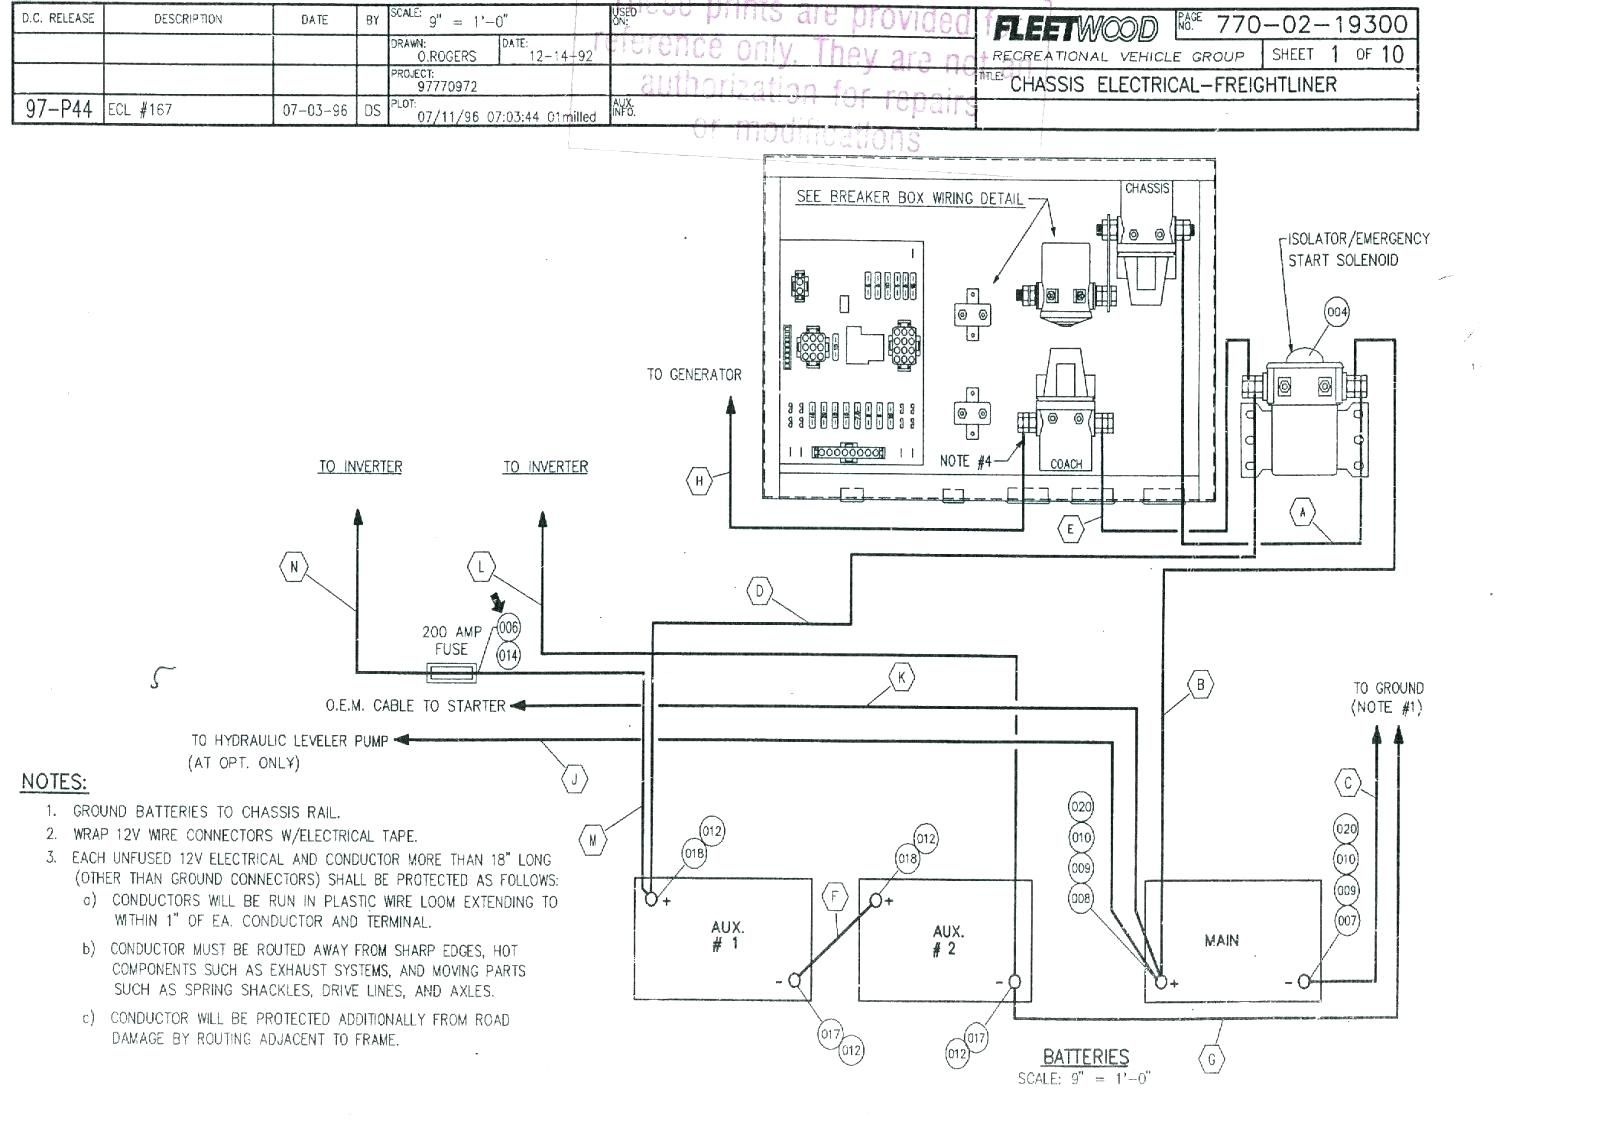 [DIAGRAM_4PO]  winnebago wiring diagram pictures wiring diagram wiring diagram chieftain  net 1984 winnebago chieftain wiring diagram | Freightliner, Diagram,  Electrical system | Winnebago Ac Wiring |  | Pinterest